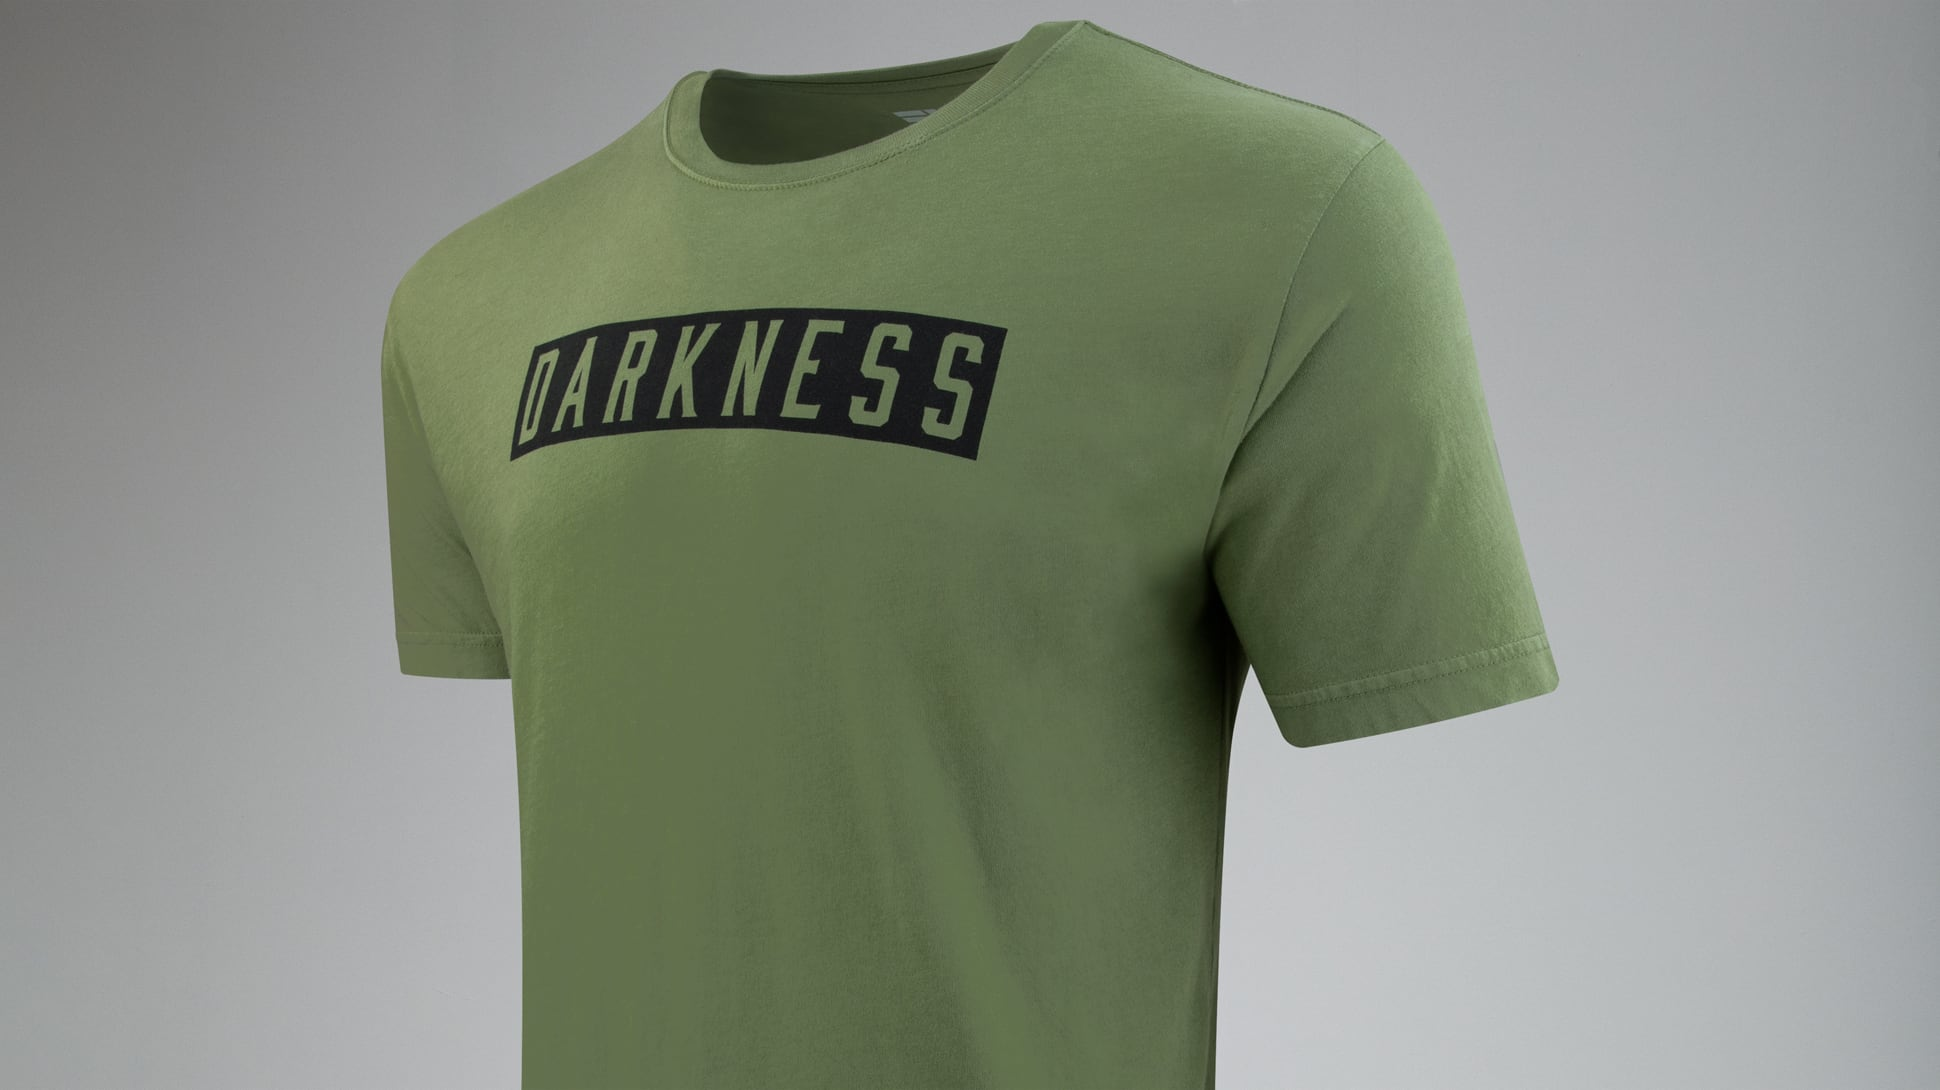 Darkness Bar Tee Image 2